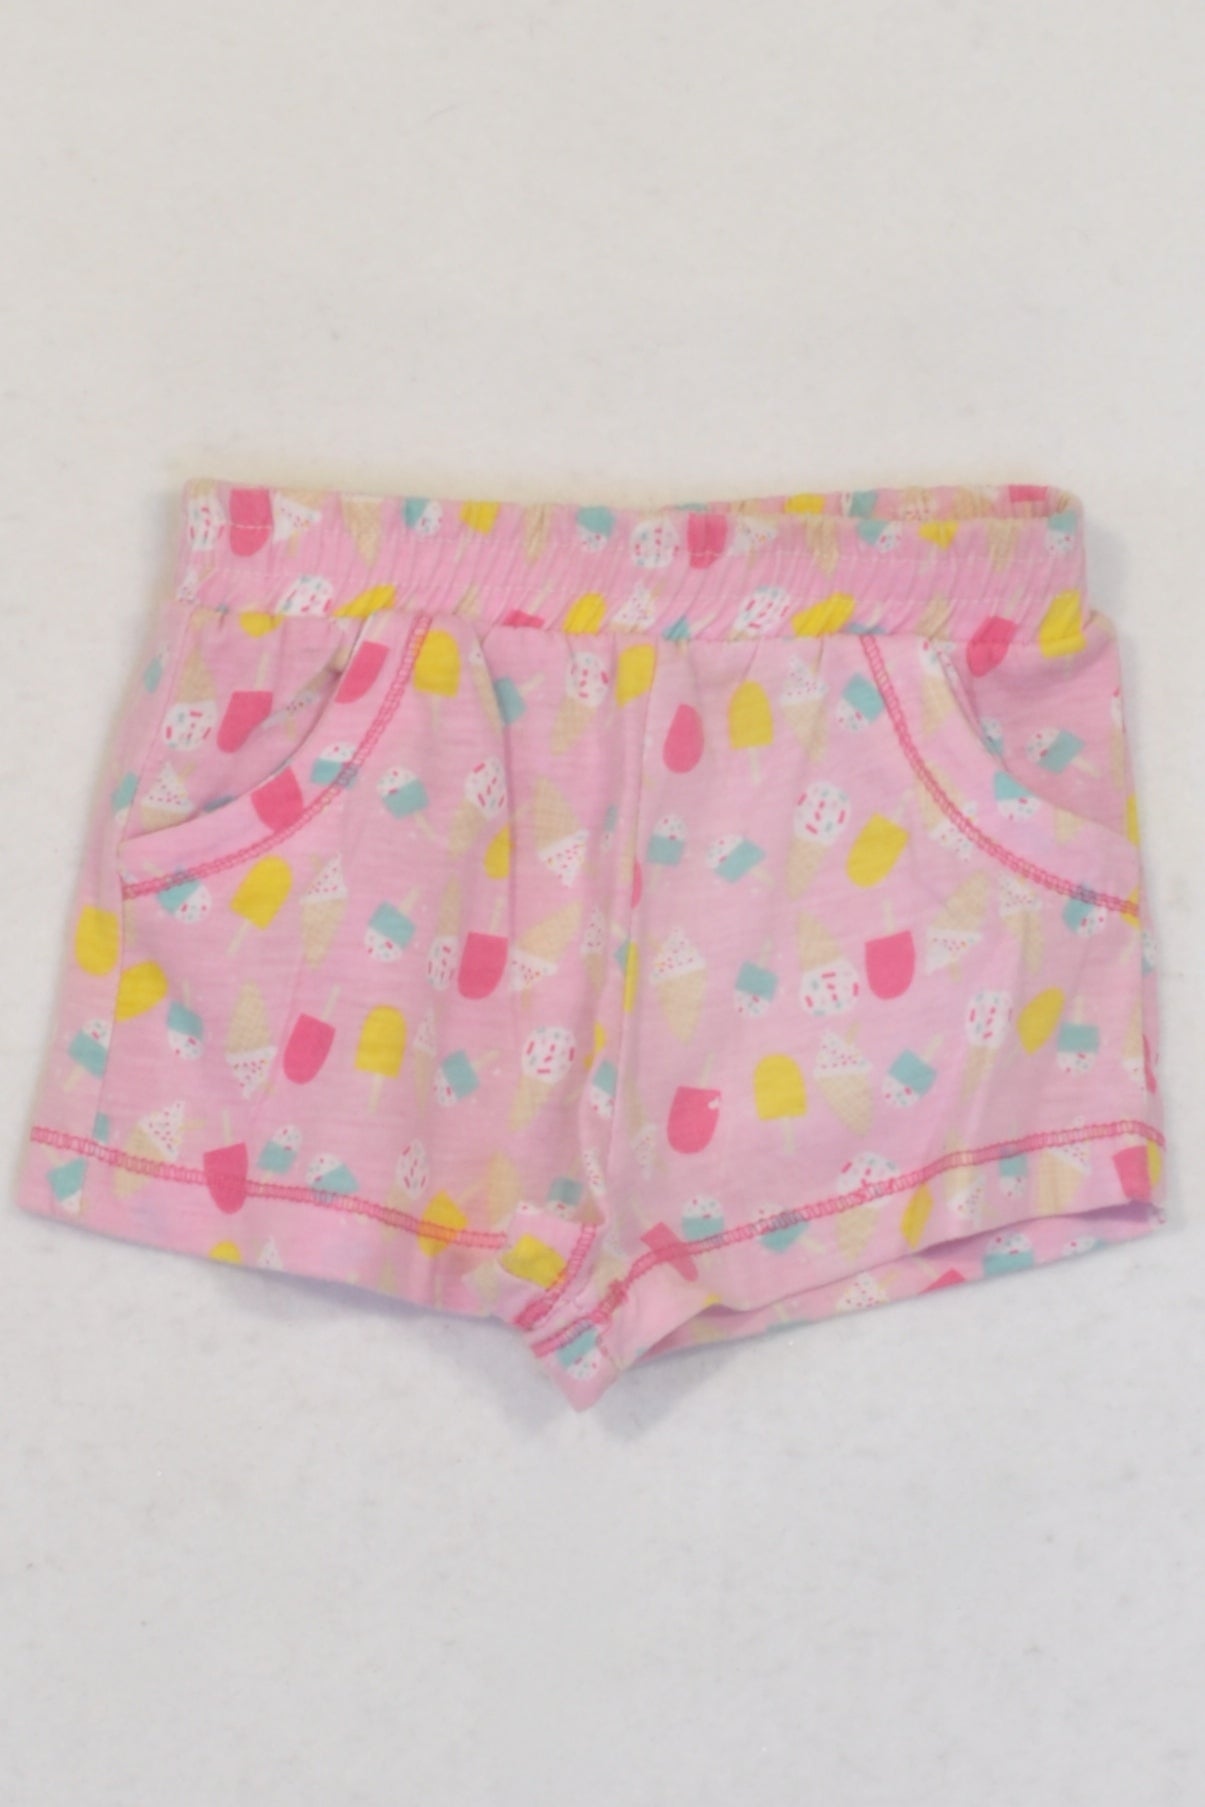 Pep Pink Ice-cream Play Shorts Girls 3-6 months